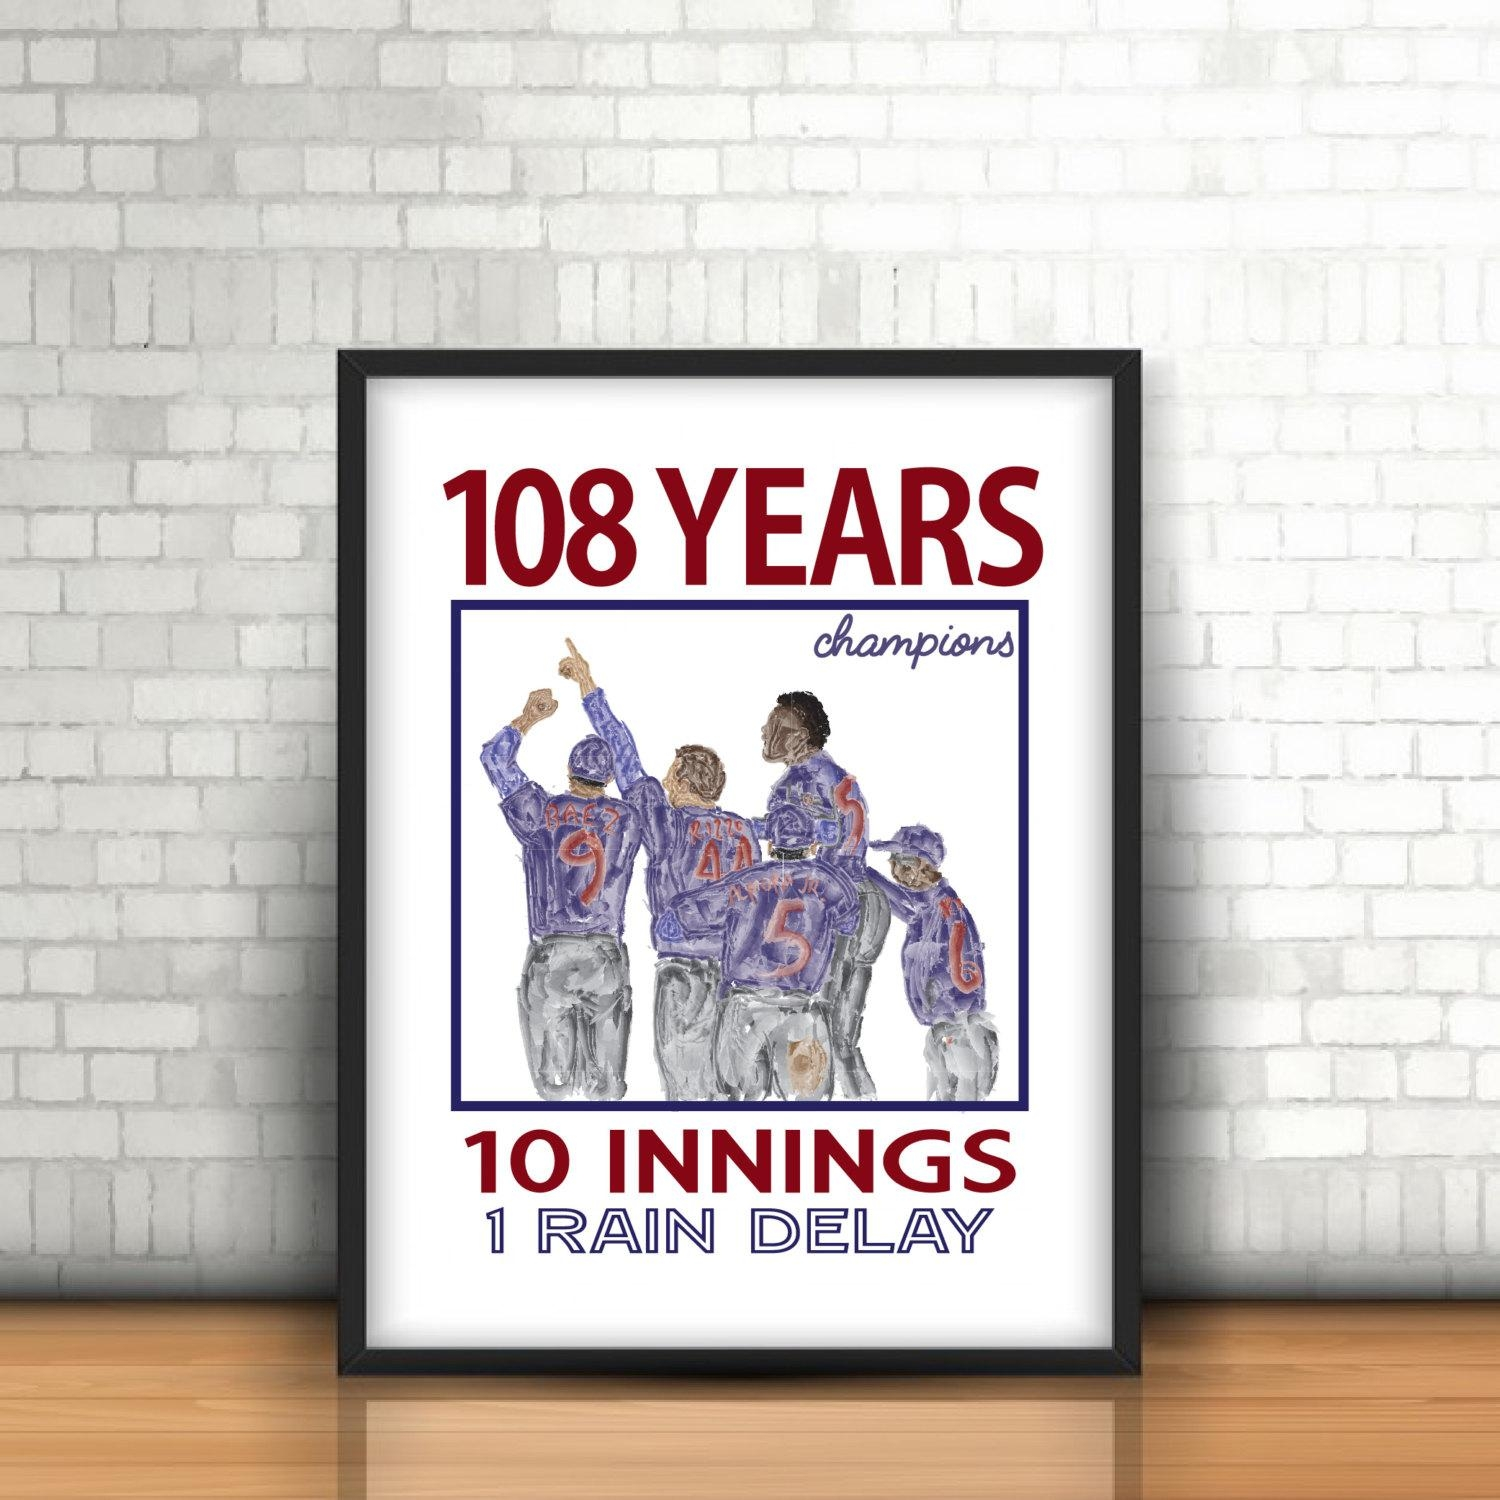 Chicago Cubs World Series Champions Printable Wall Art Regarding Chicago Cubs Wall Art (View 9 of 20)